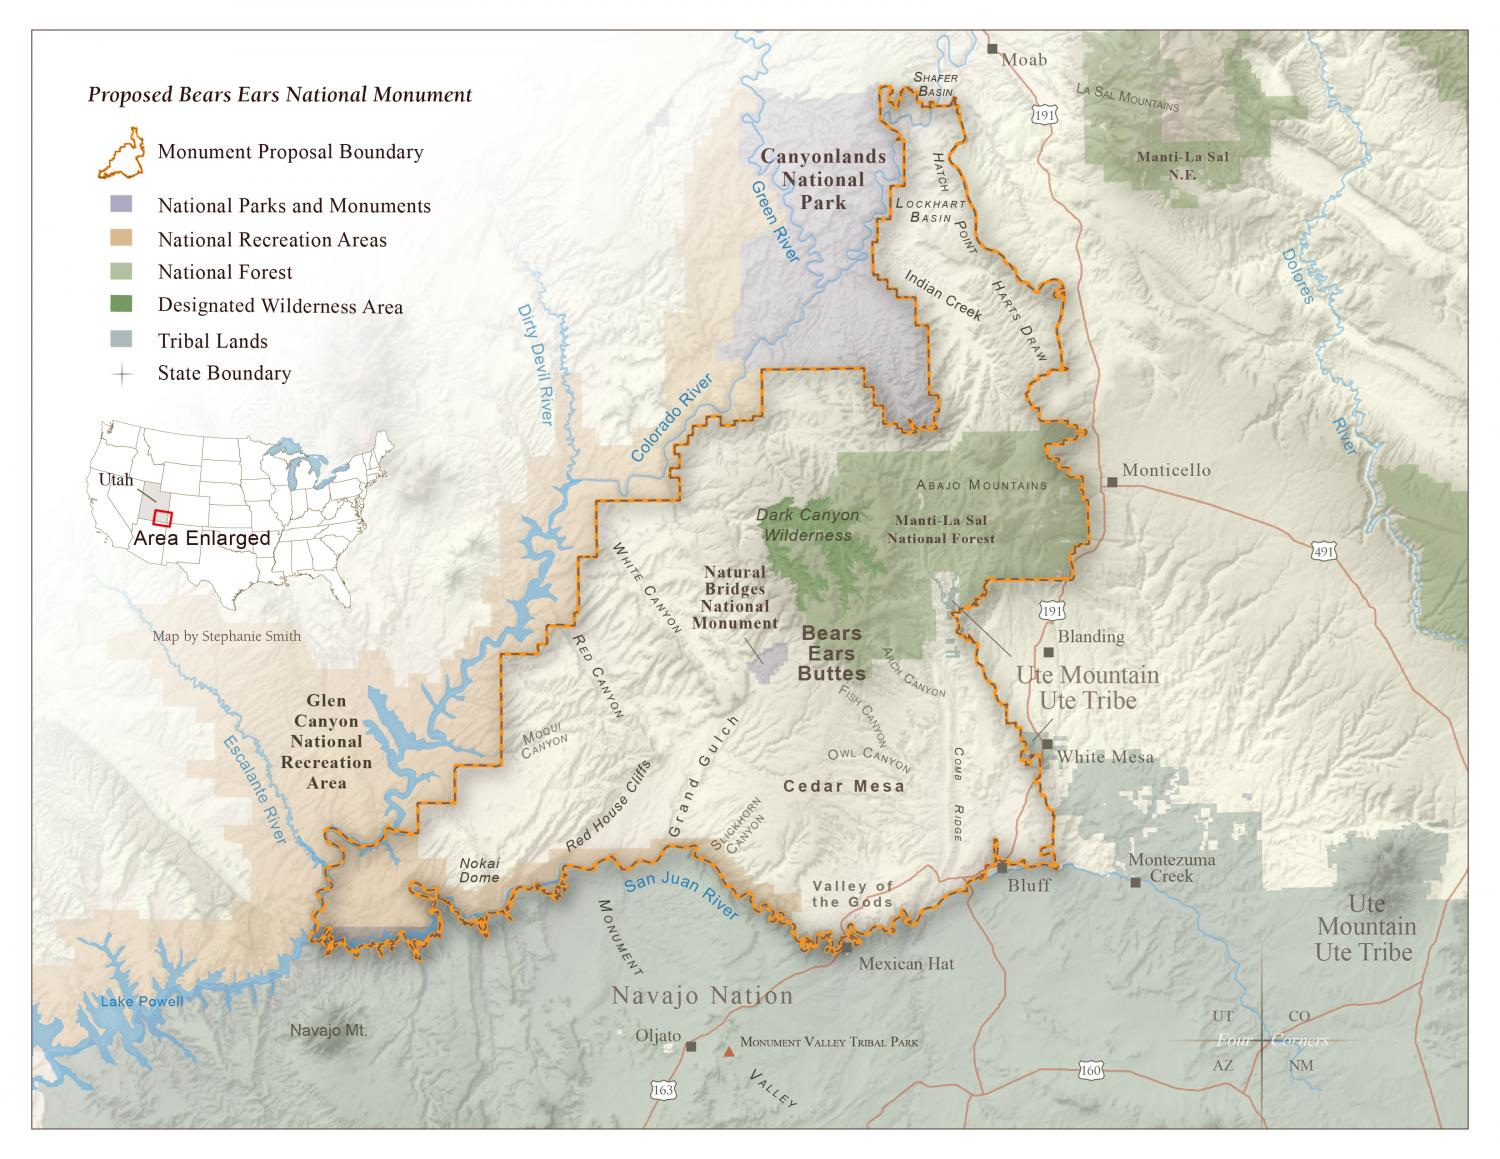 Proposed Bears Ears National Monument Map Grand Canyon Trust